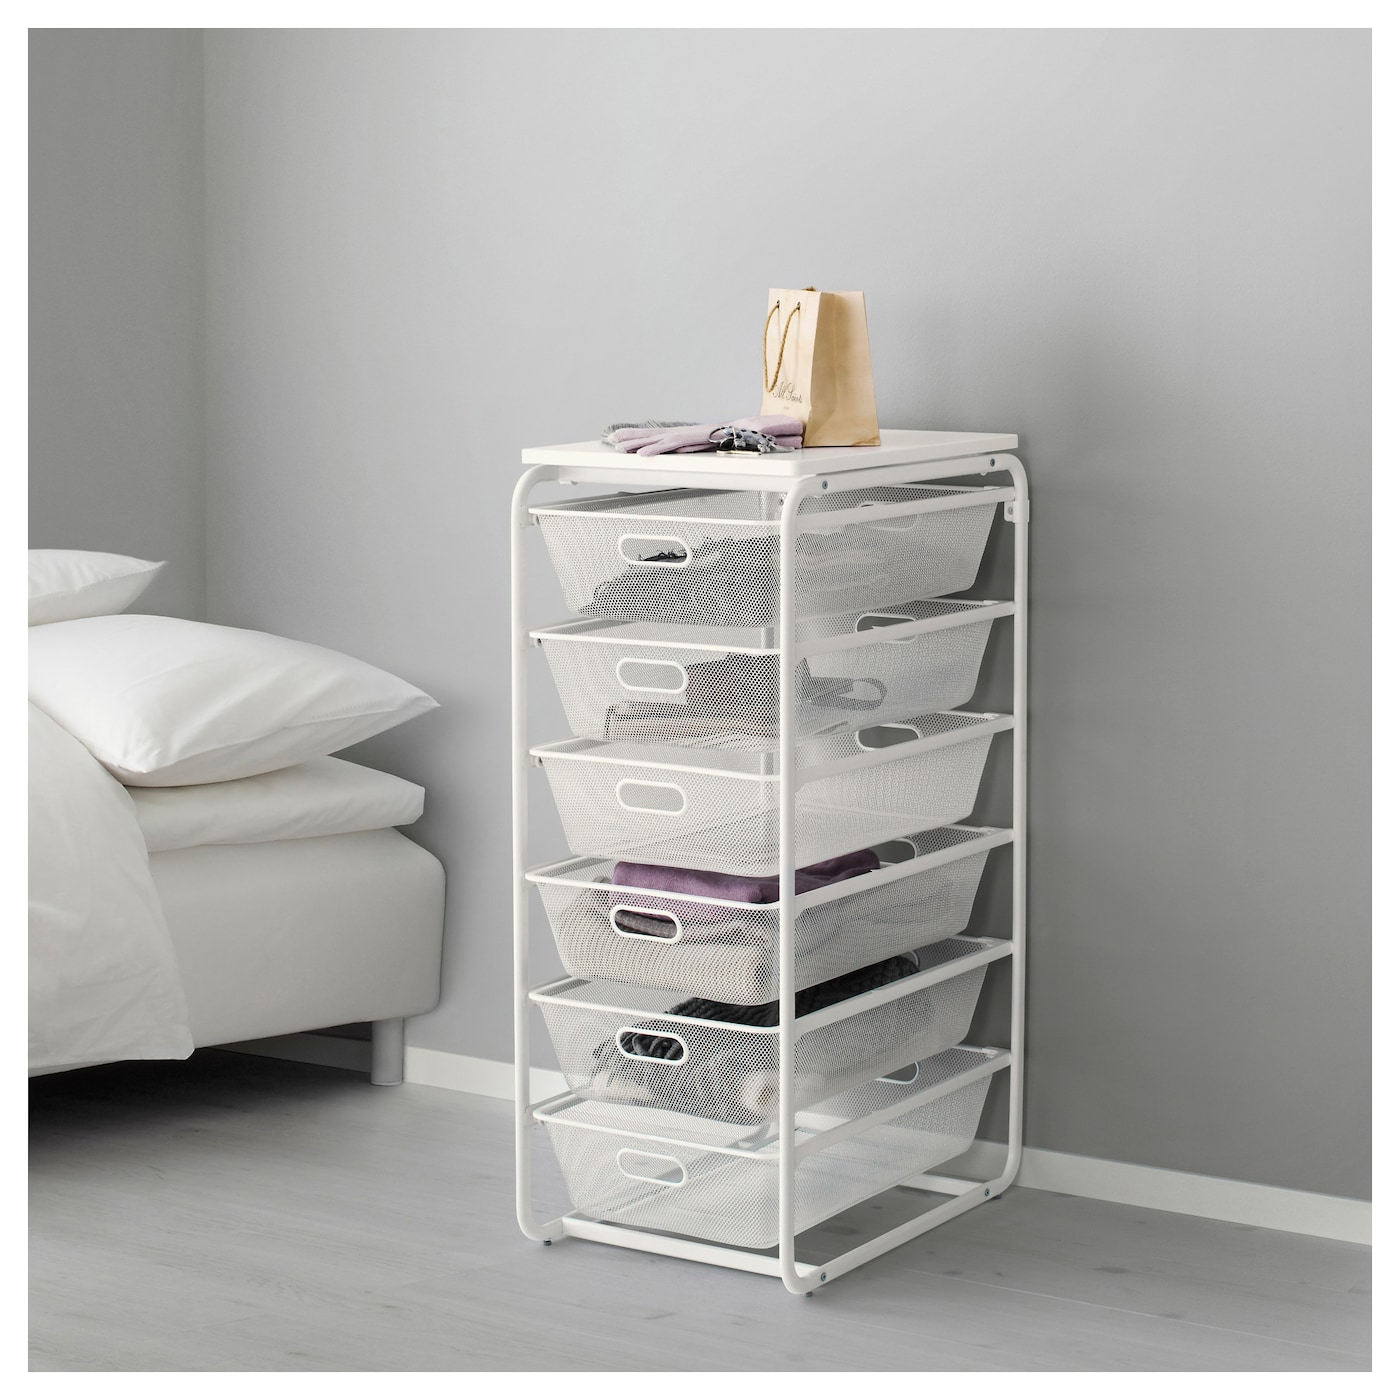 ALGOT Frame/6 mesh baskets/top shelf White 41 x 60 x 105 cm - IKEA